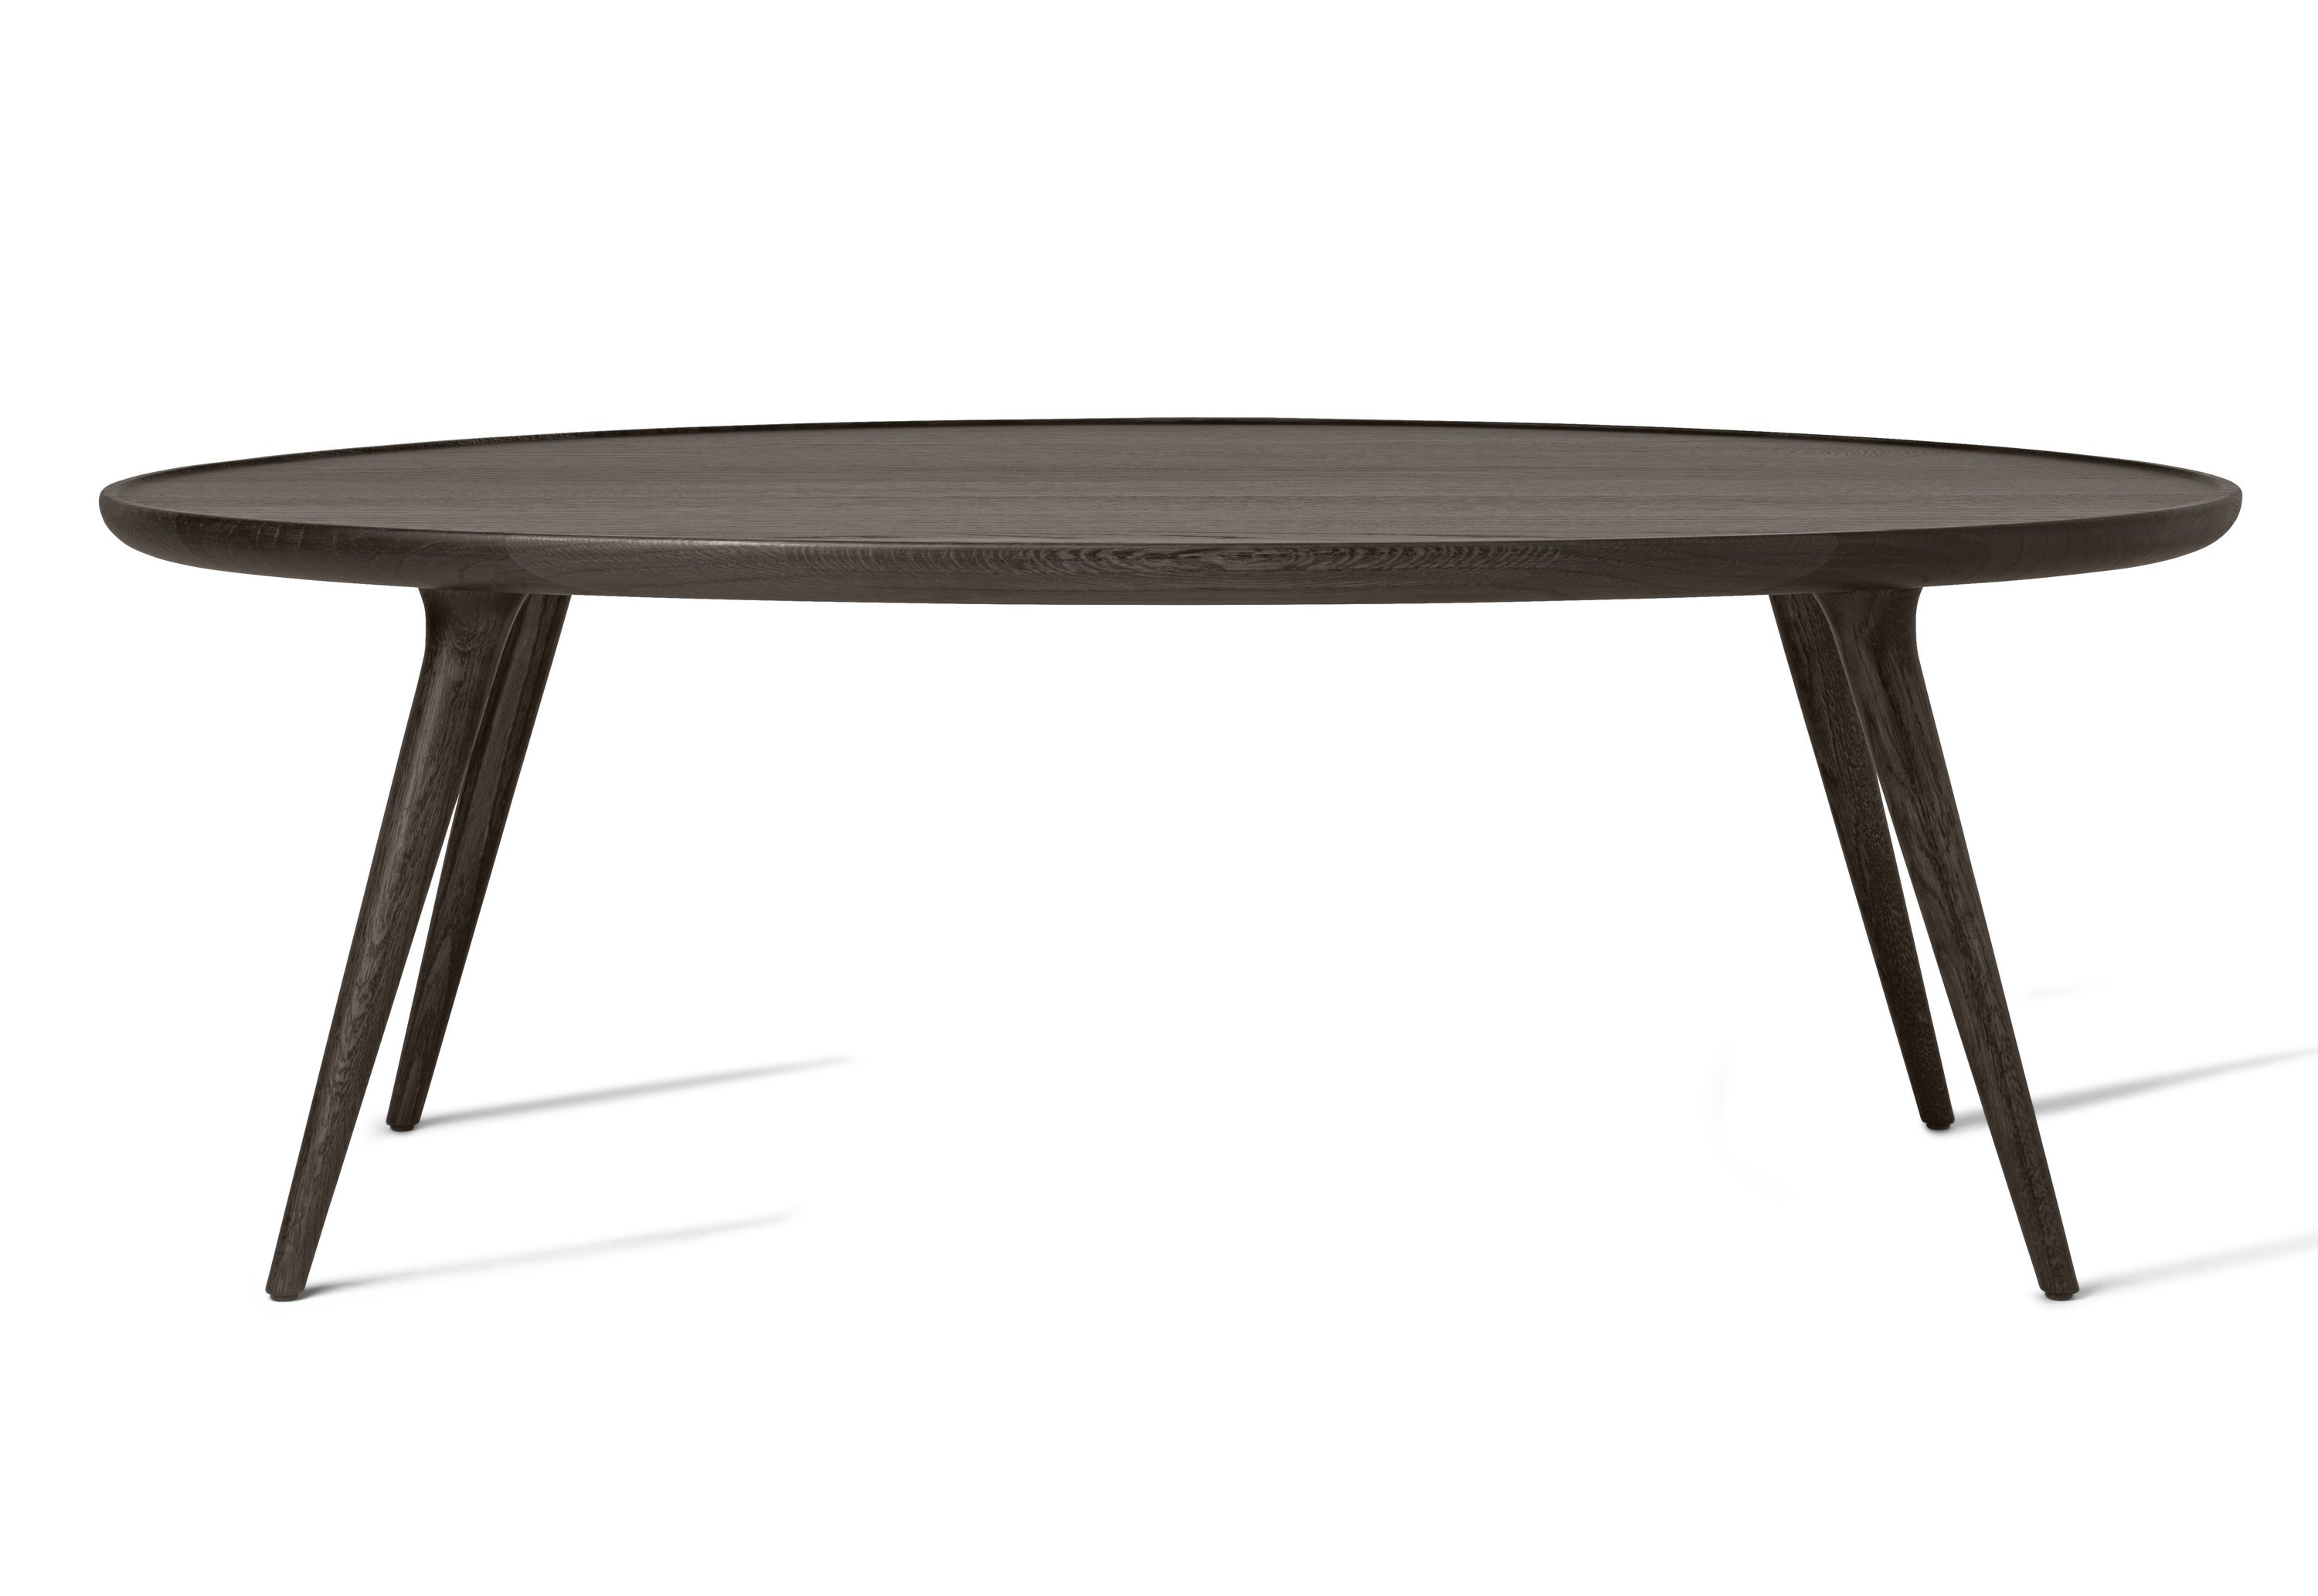 Mater Accent Oval Lounge Table, Sirka Grey Oak